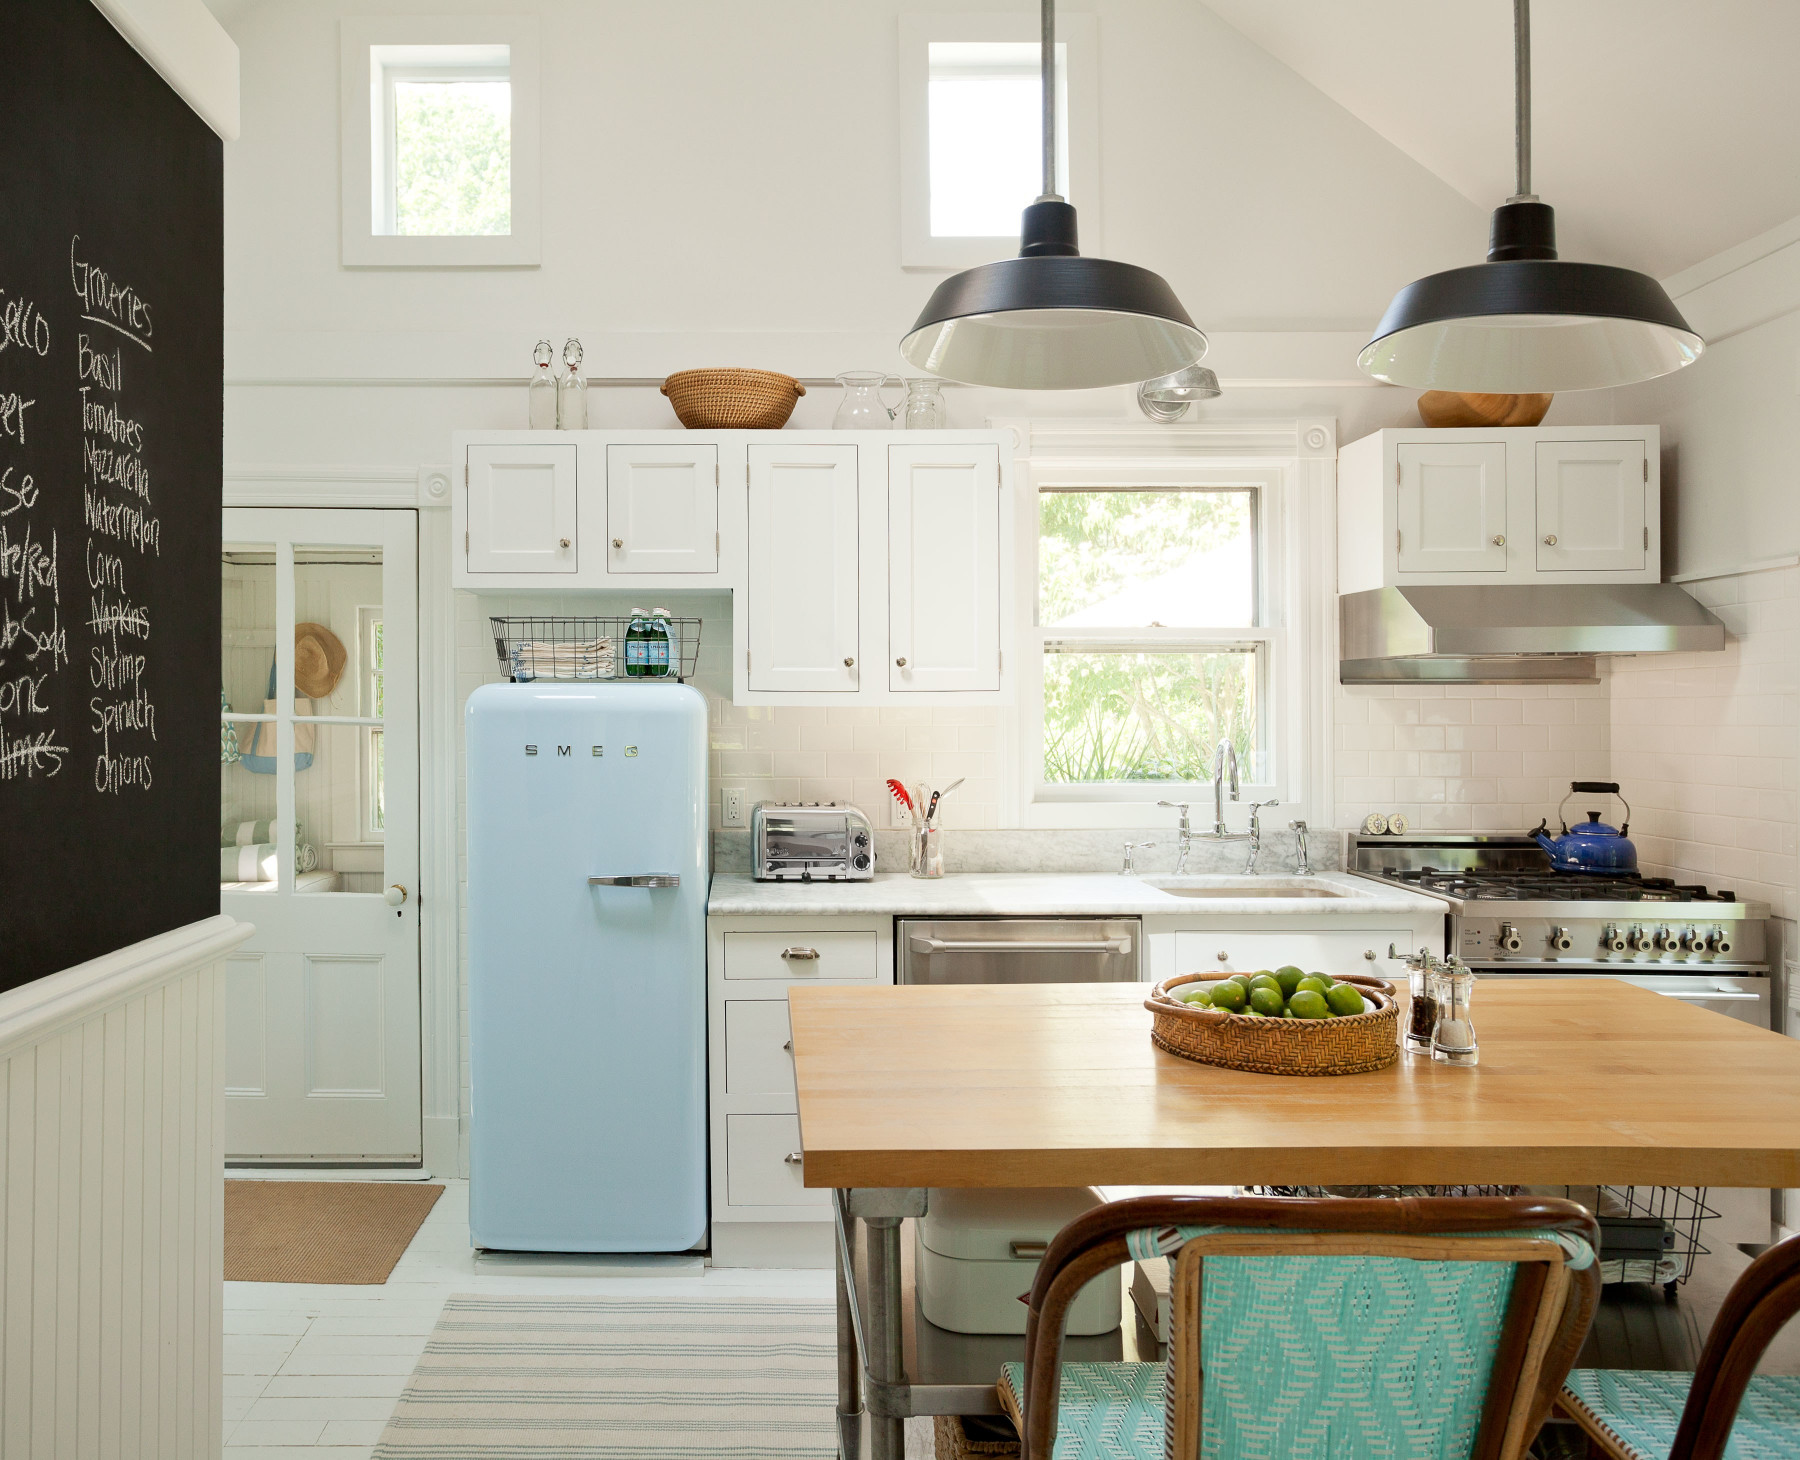 Small Kitchen Layout Ideas Beautiful the Best Small Kitchen Design Ideas for Your Tiny Space